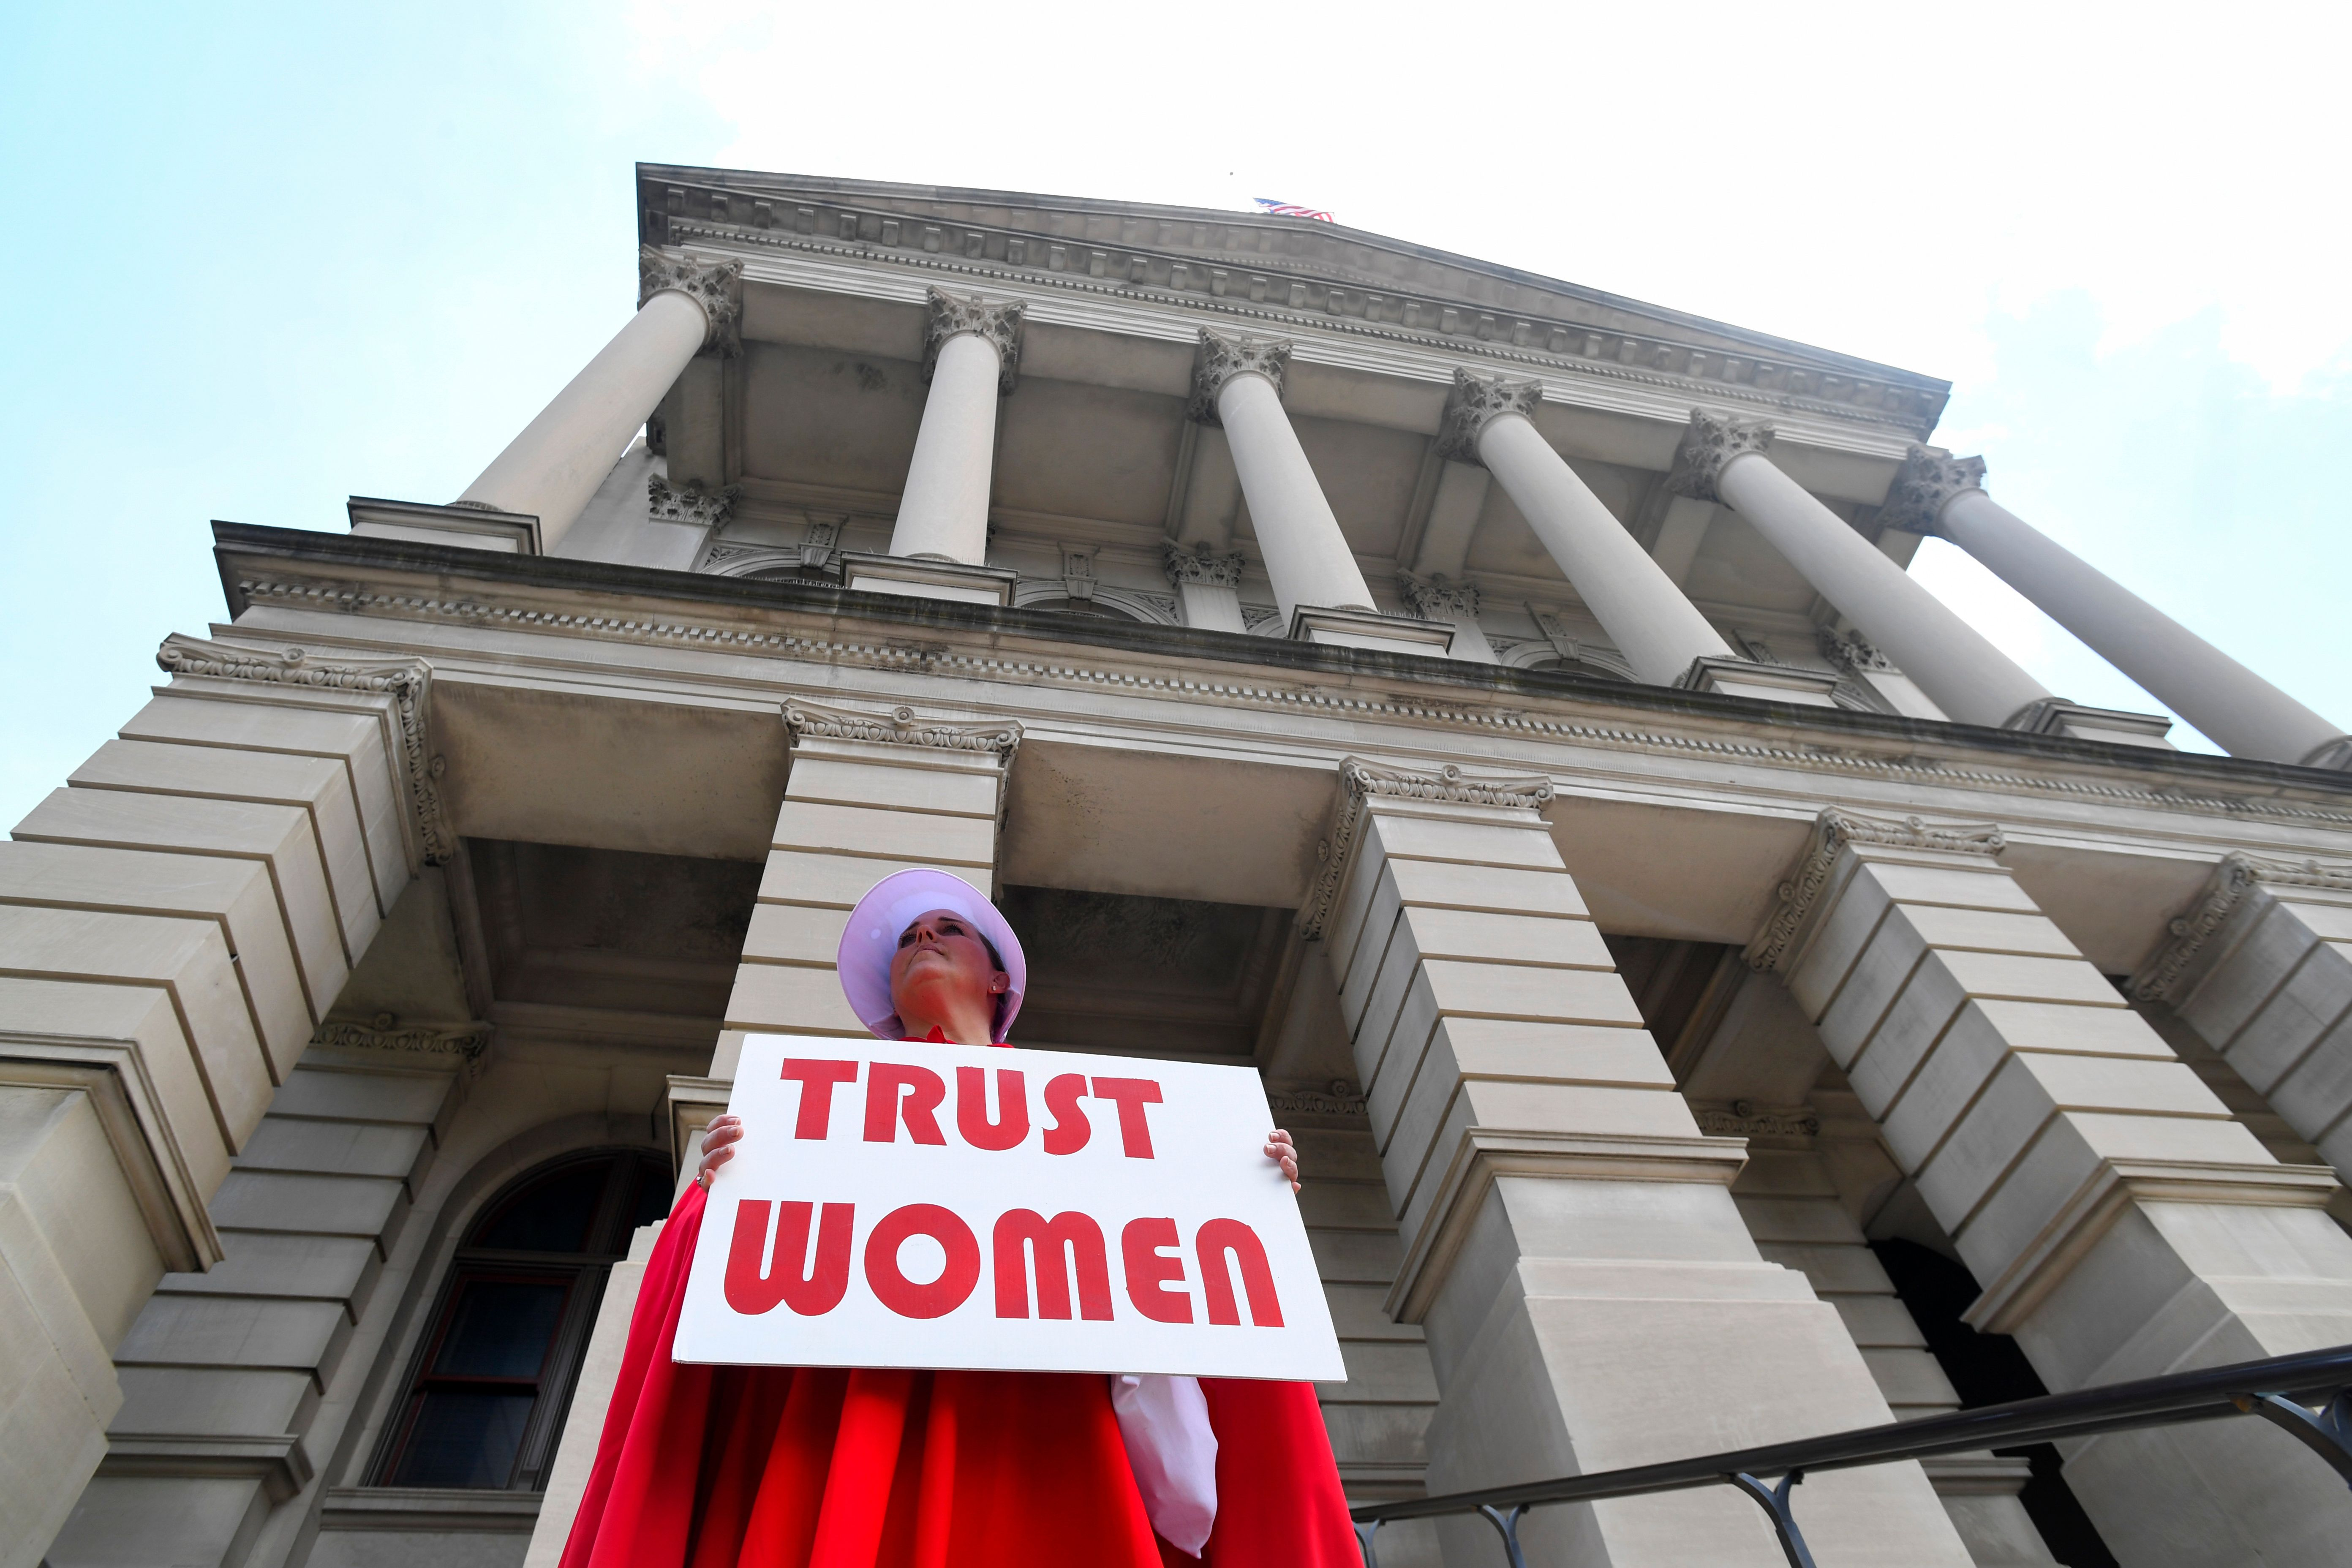 All of the 6-week abortion bans passed this year have now been blocked in court